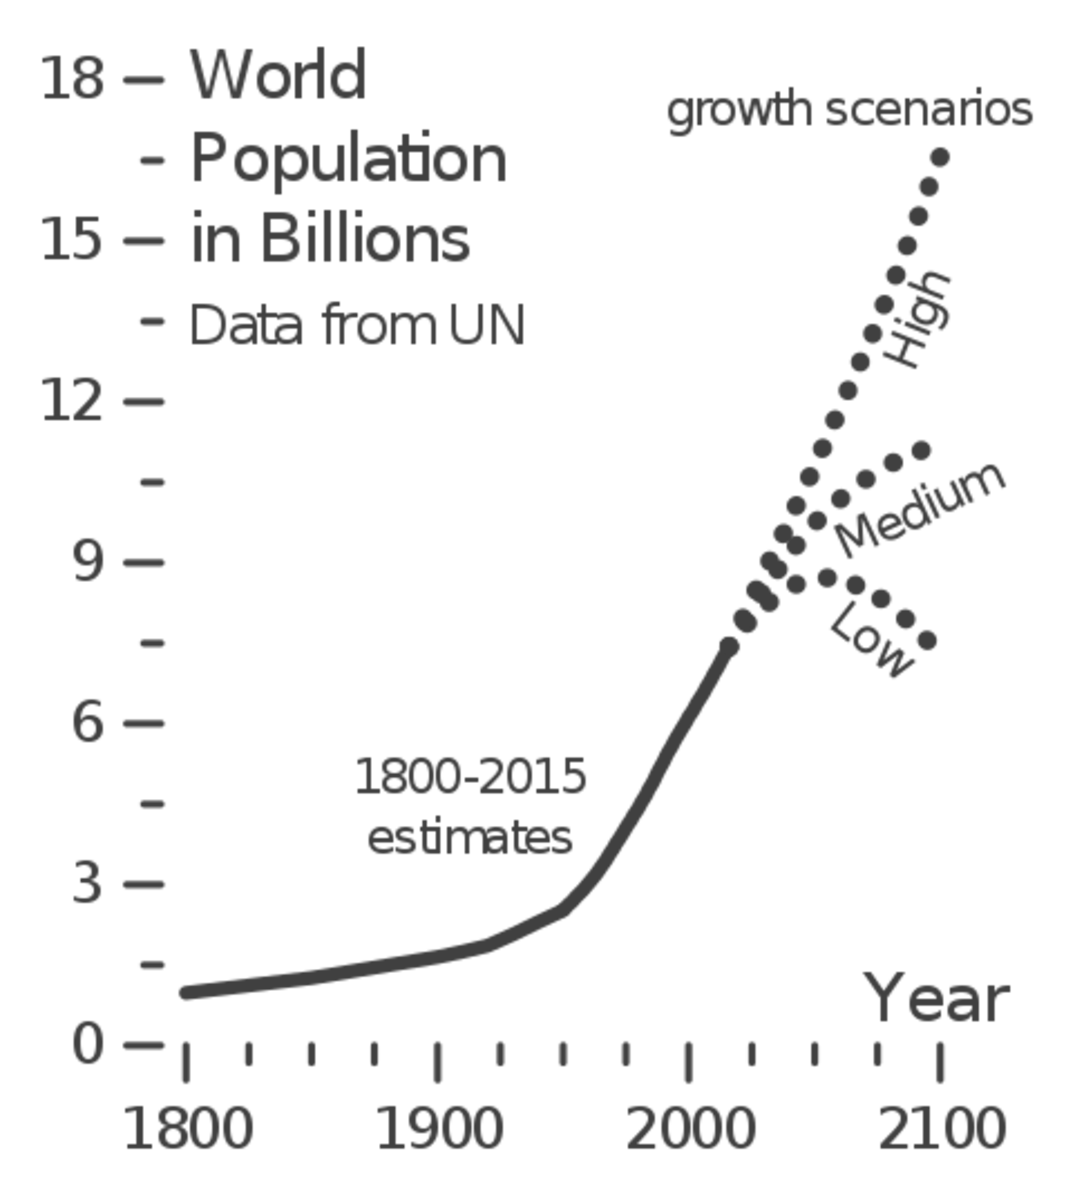 This chart provides a snapshot of past population growth and future projections.